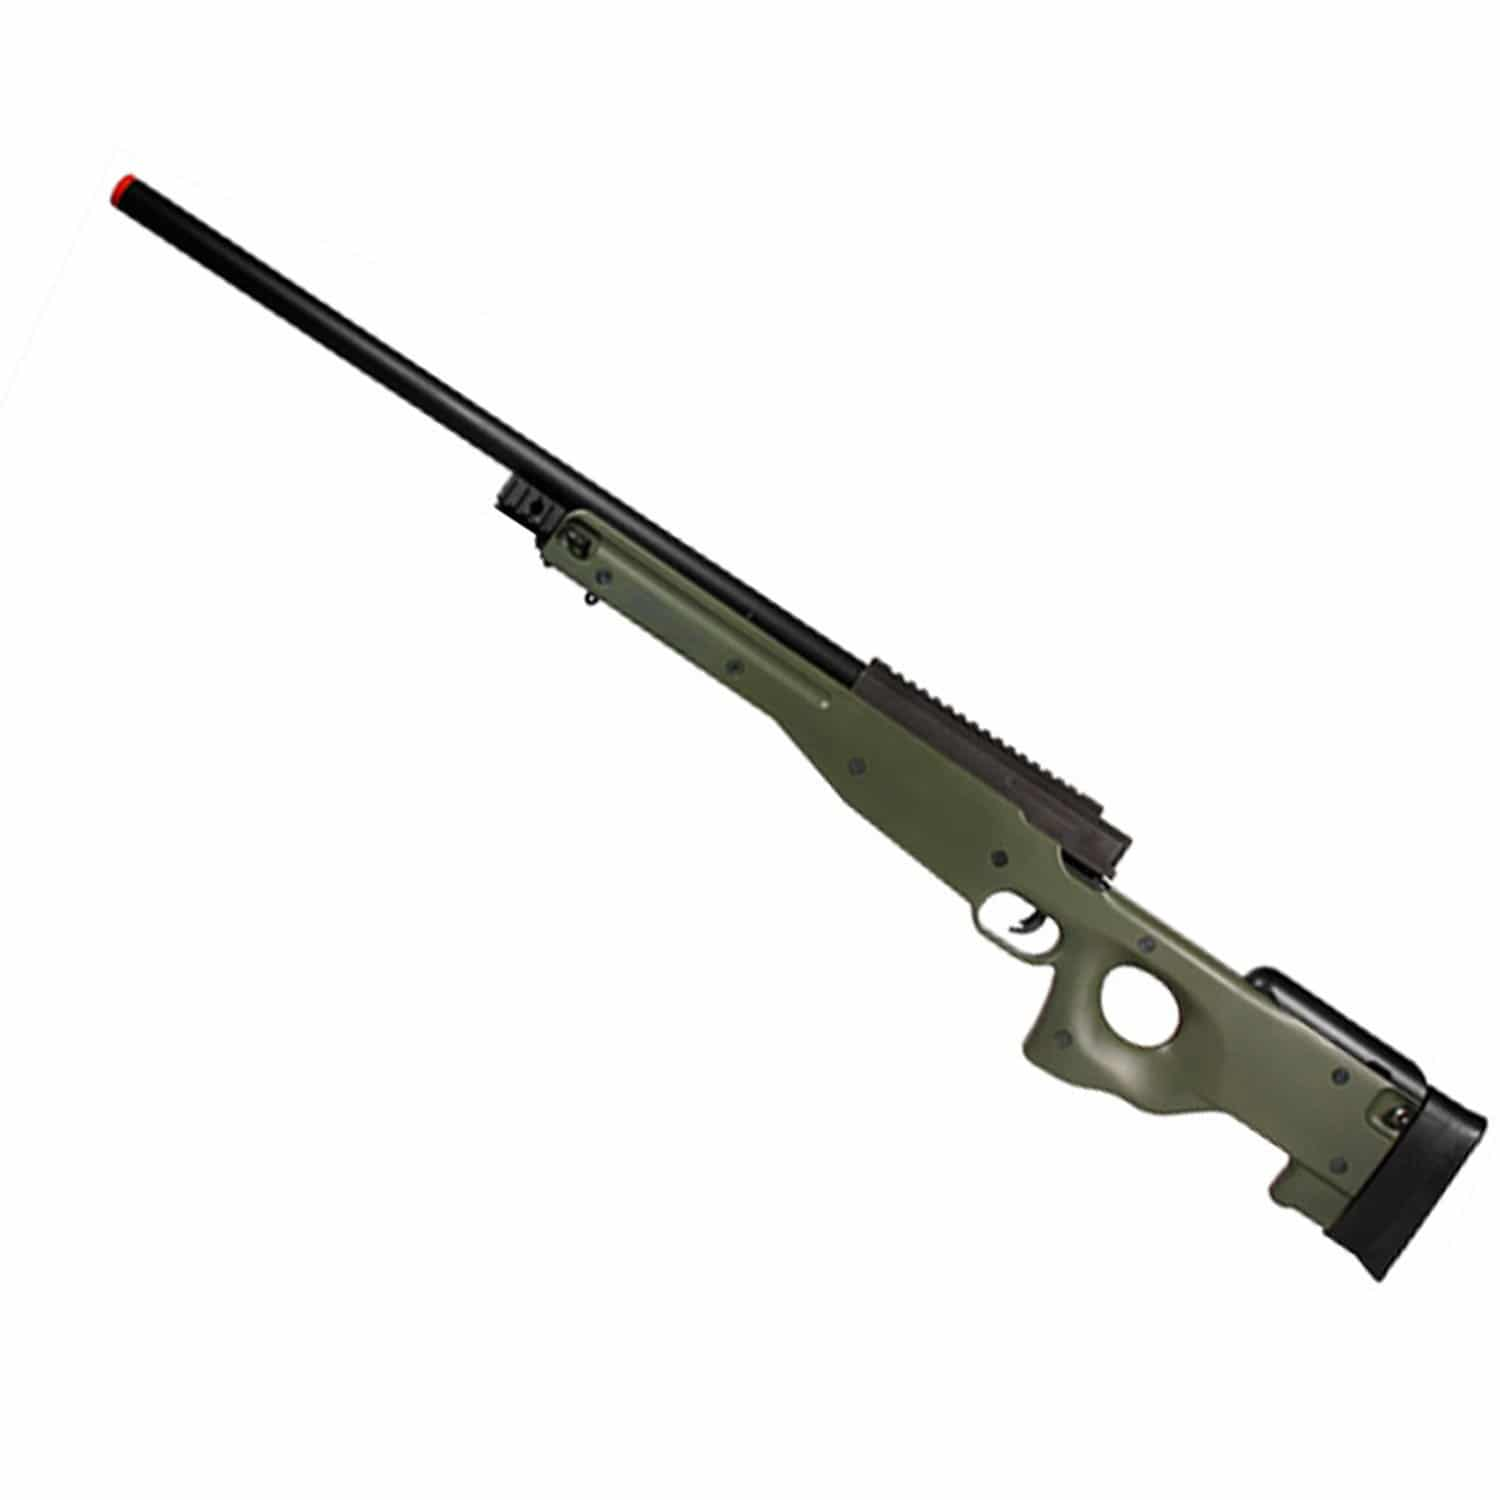 AGM L96 AWP Bolt Action Airsoft Sniper Rifle Review 2021